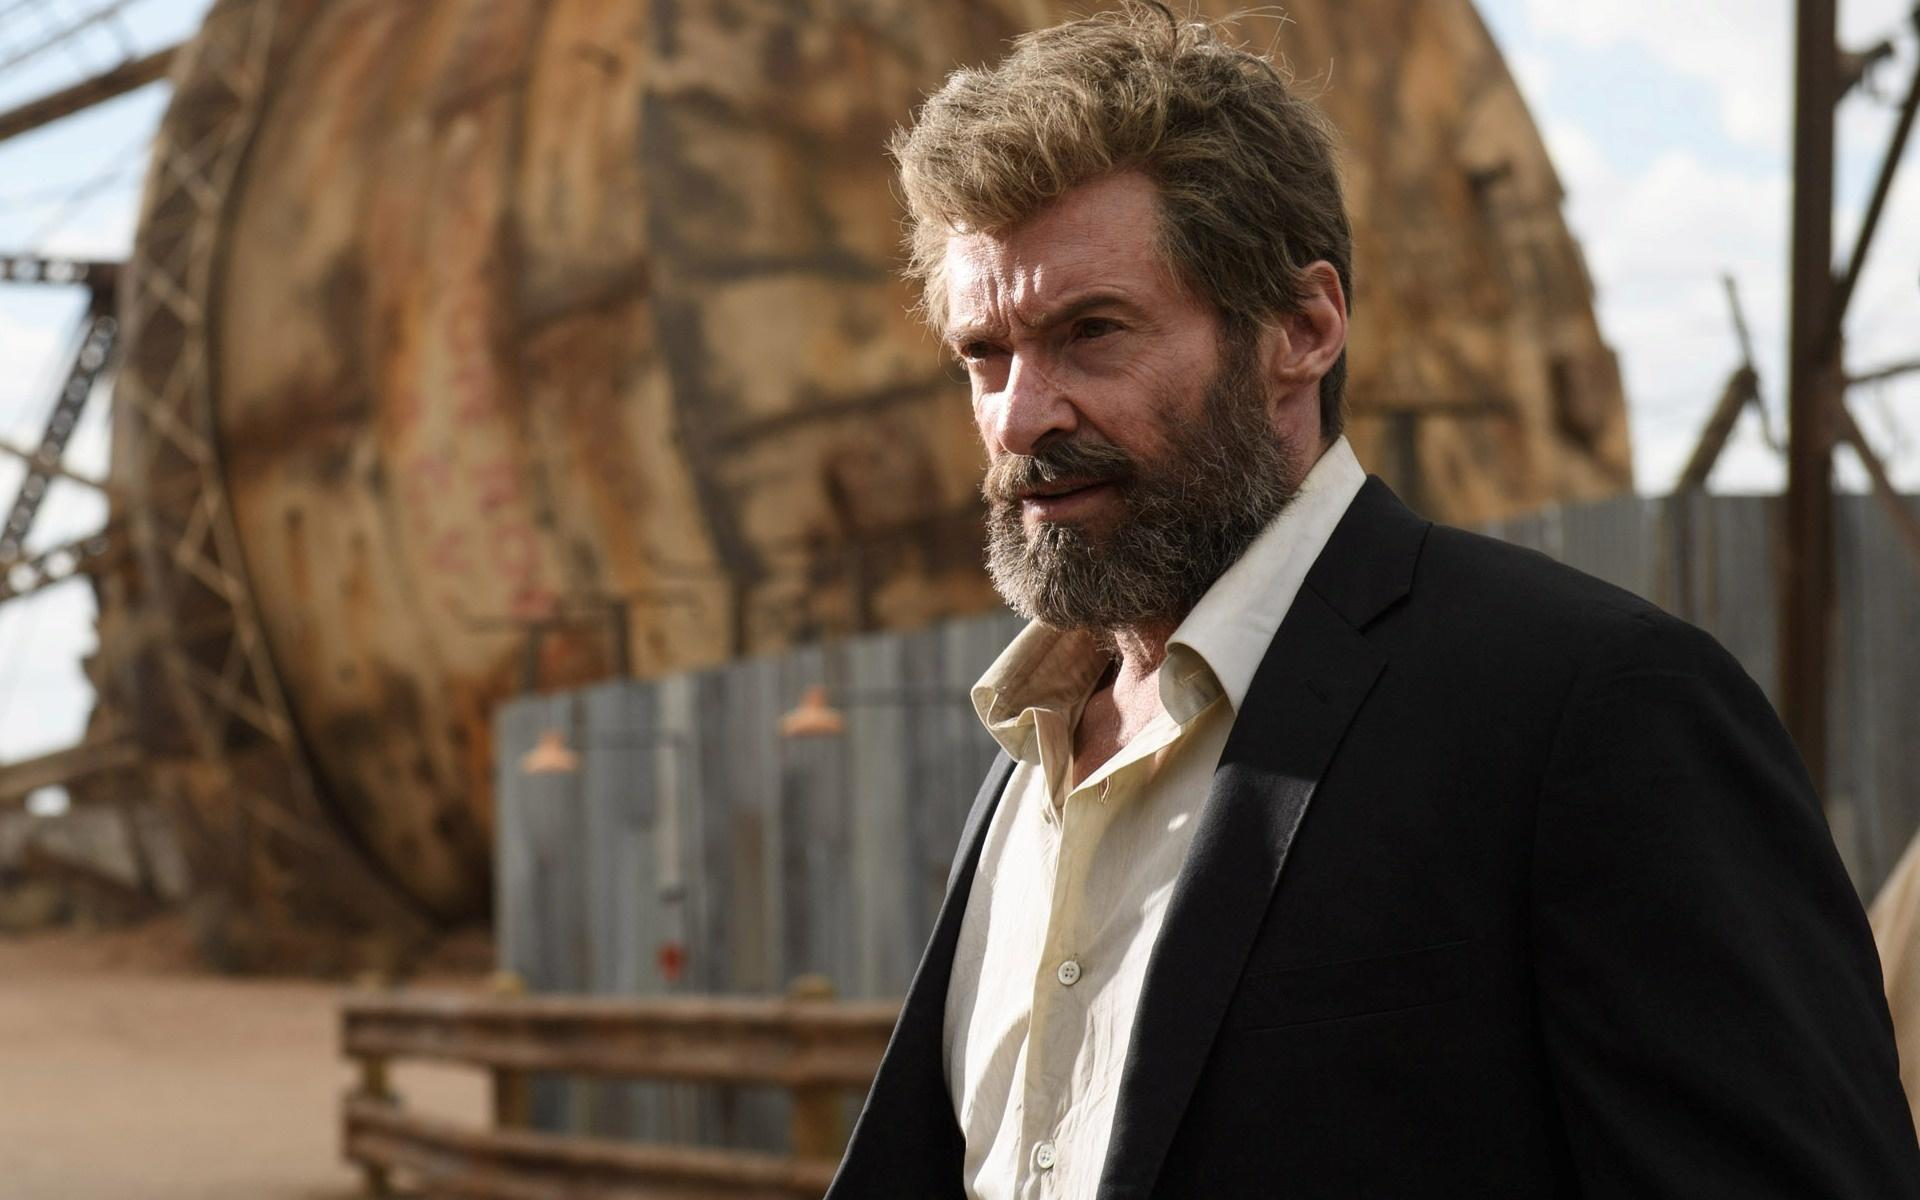 logan actor hugh jackman would have kept playing wolverine if x-men